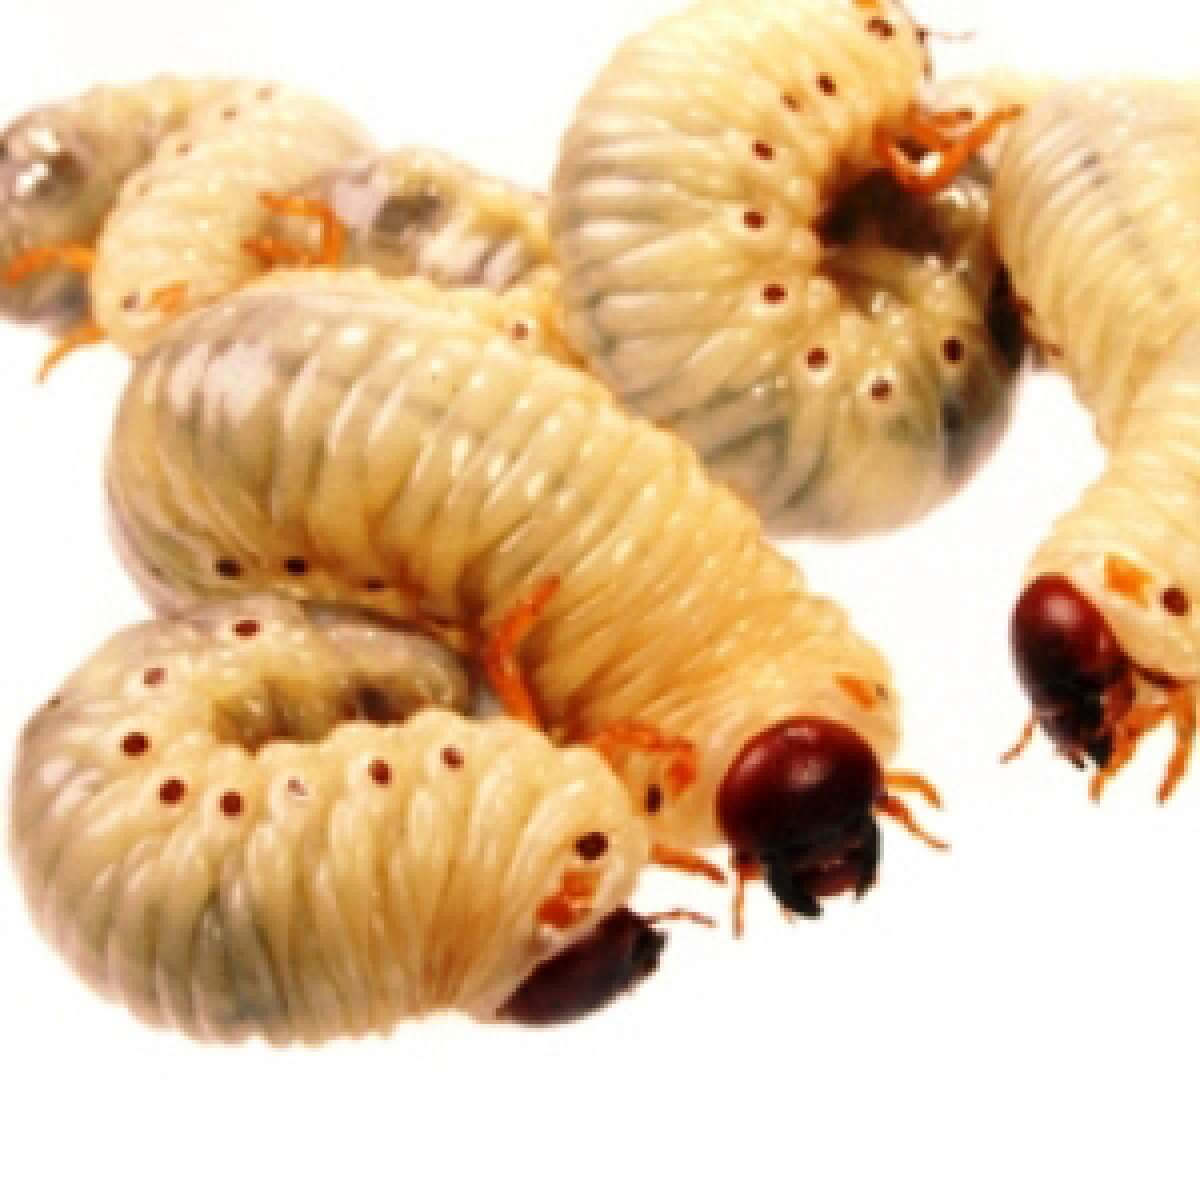 Maggots Control Of Maggot Pests In